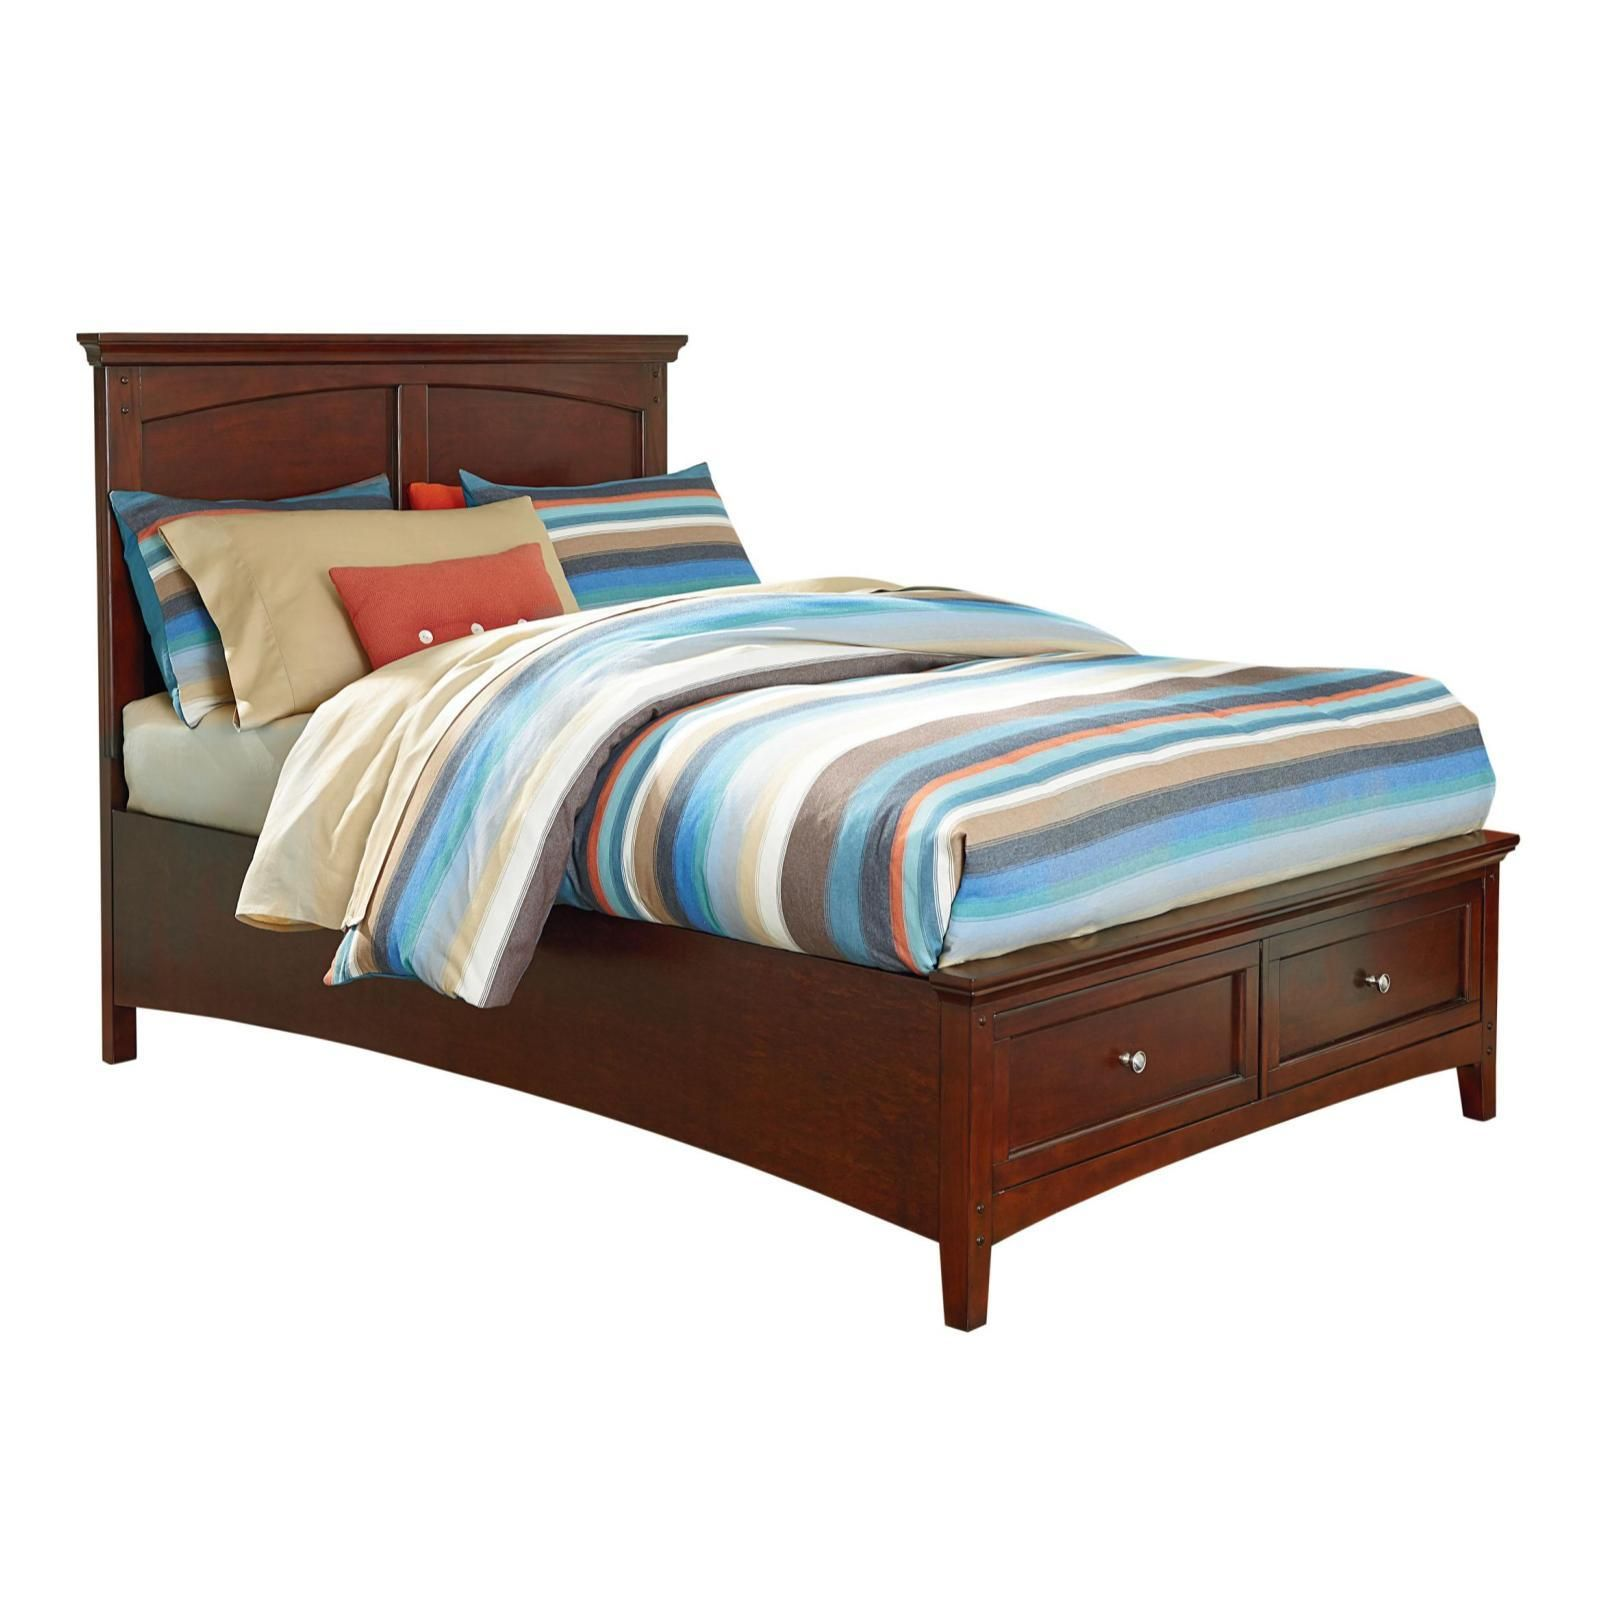 Cooperstown Youth Storage Bed Full bed with storage